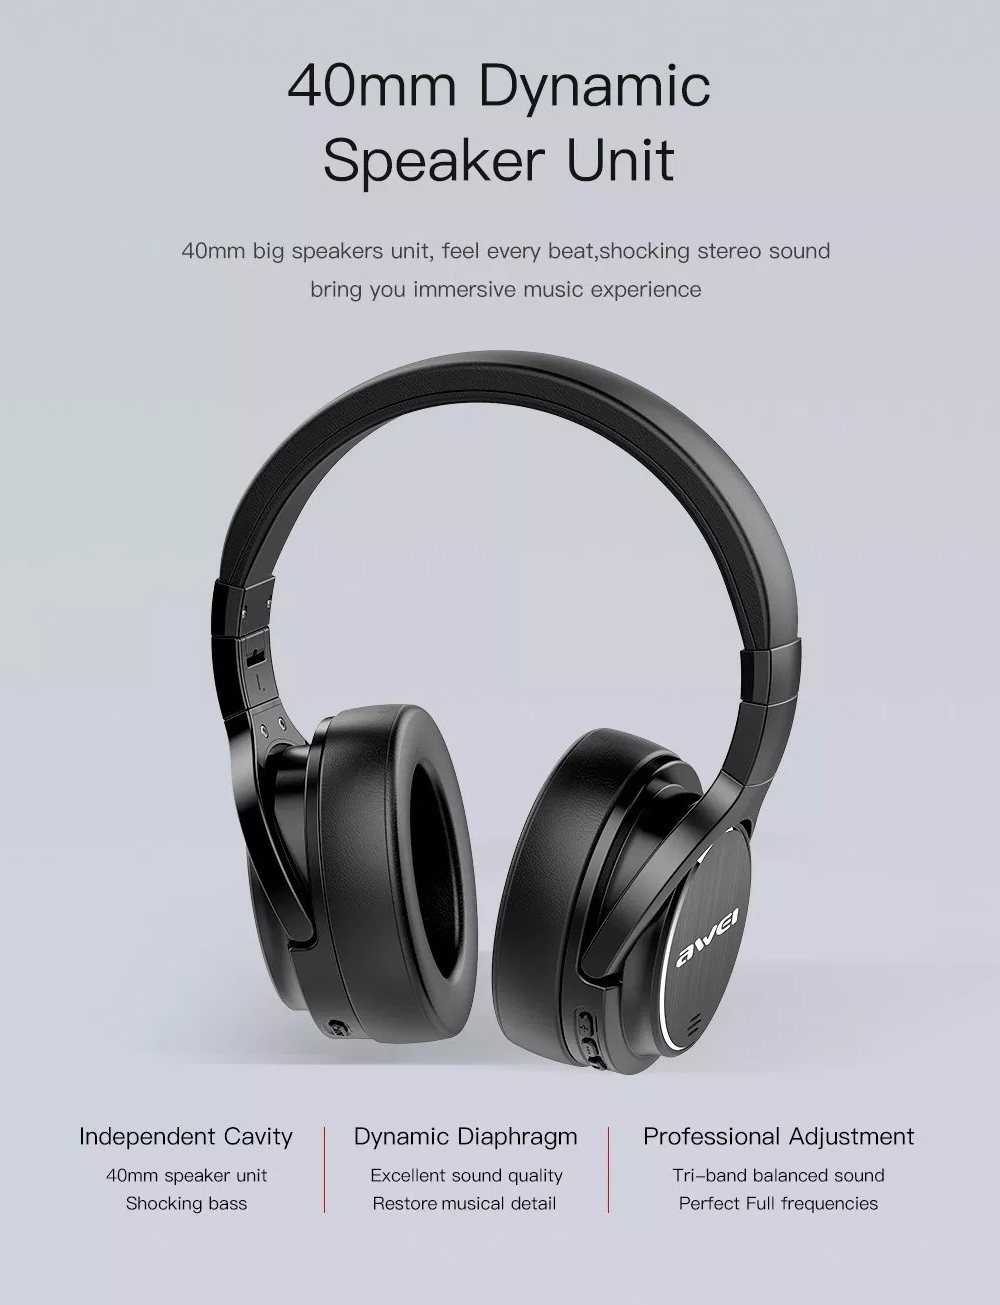 Awei A950bl Bluetooth Headset Wireless Headphone With Mic 5346 Musik Stereo Beats S450 Anc Noise Reduction Headband Black